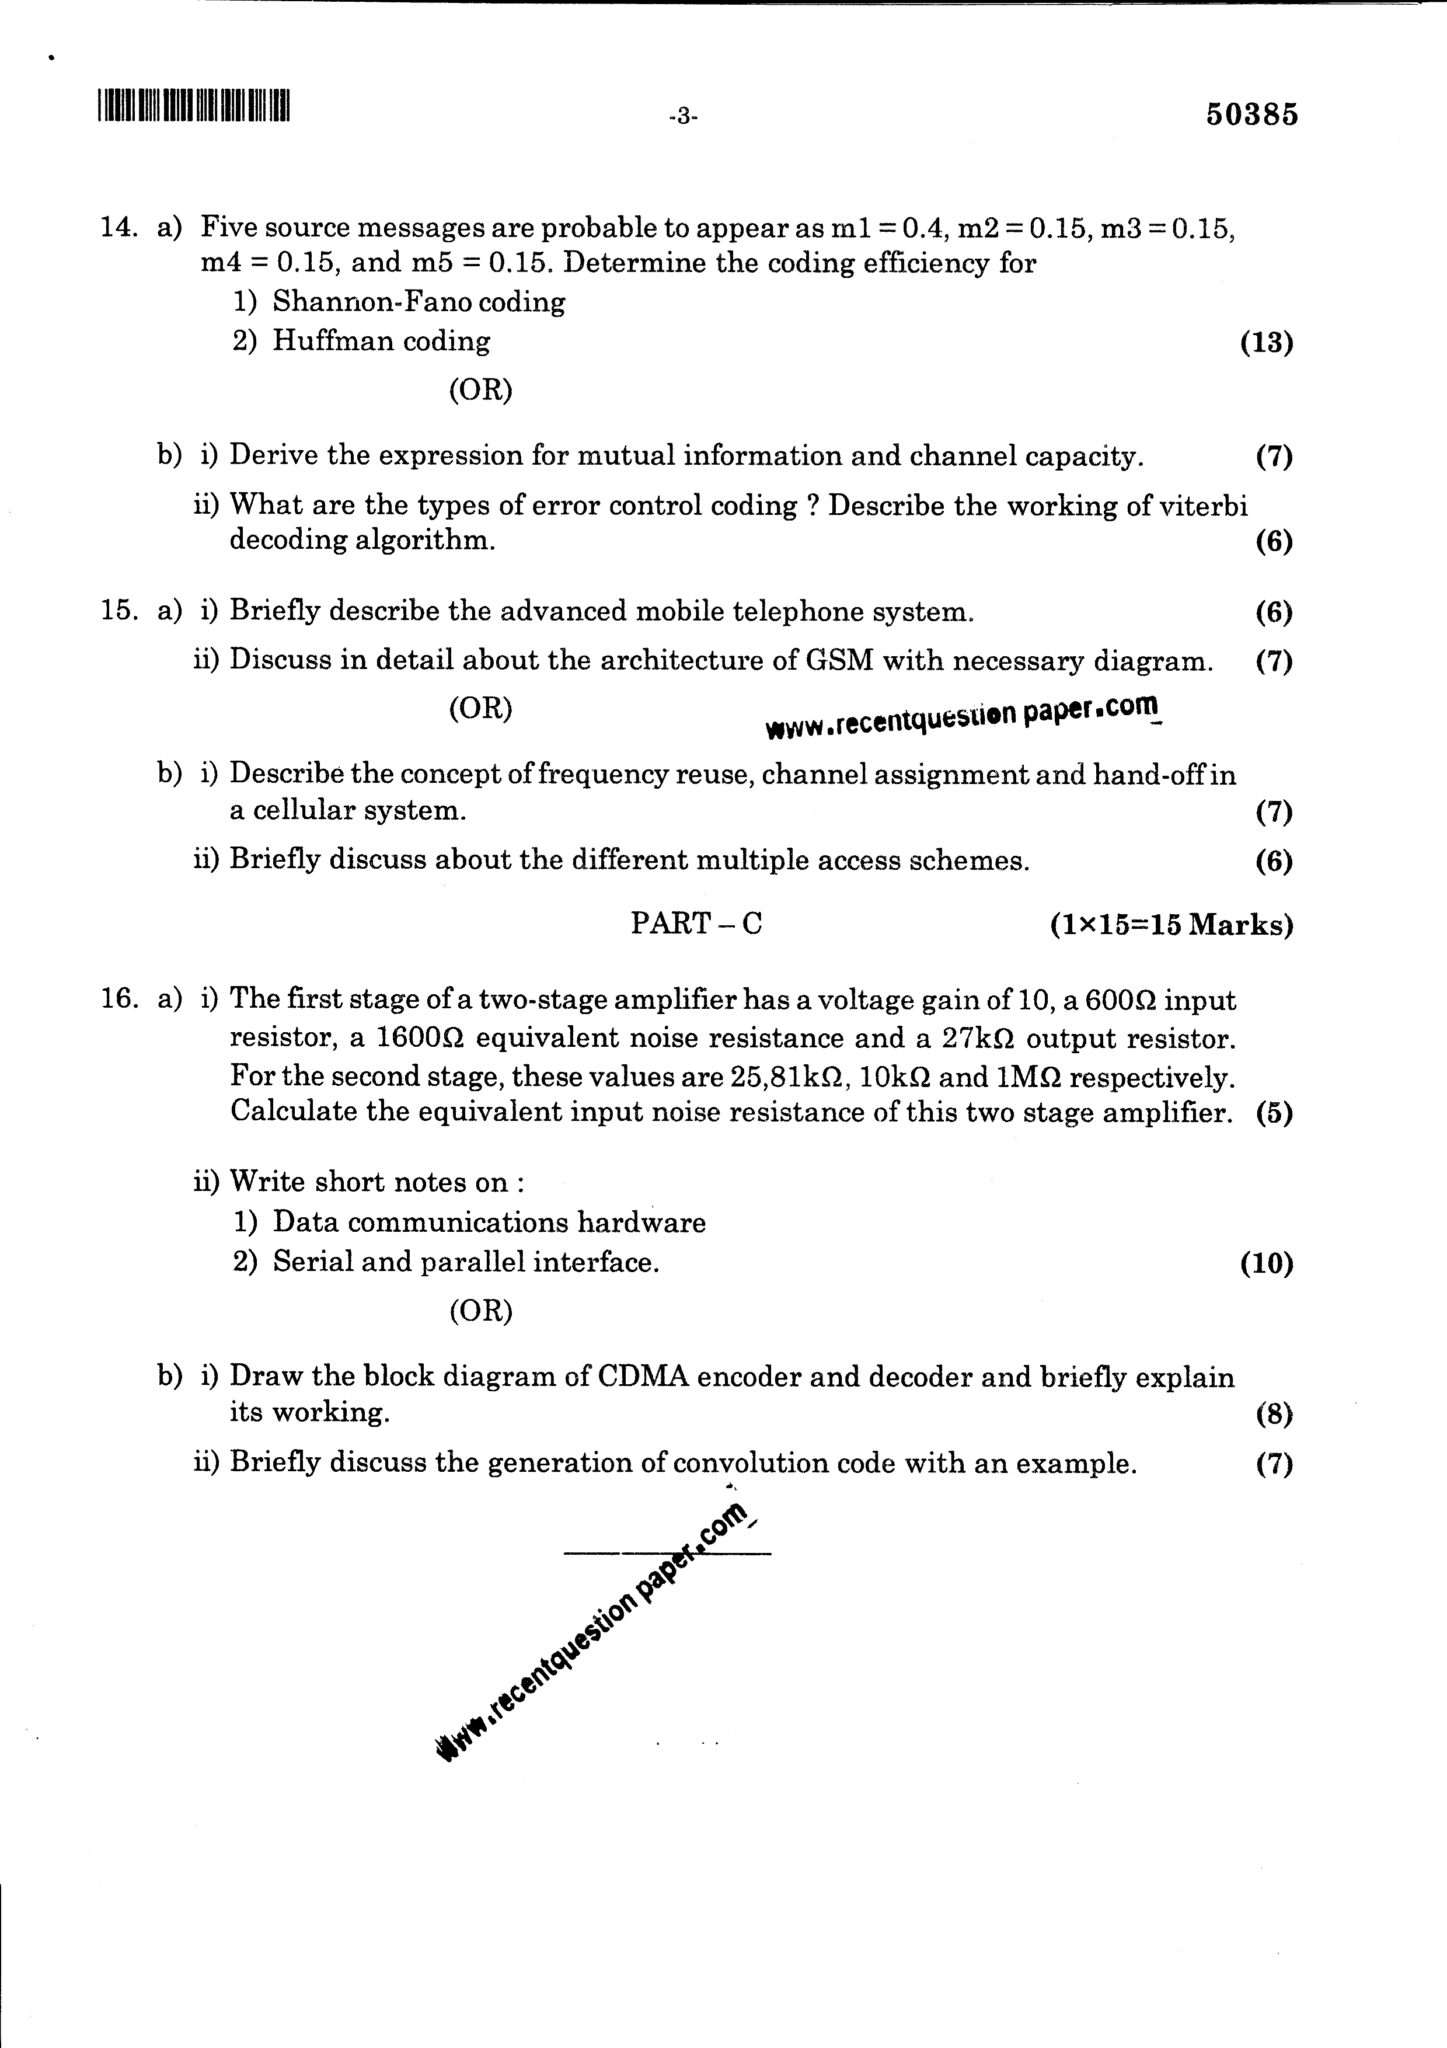 CS6304 Analog And Digital Communication Question Paper Nov